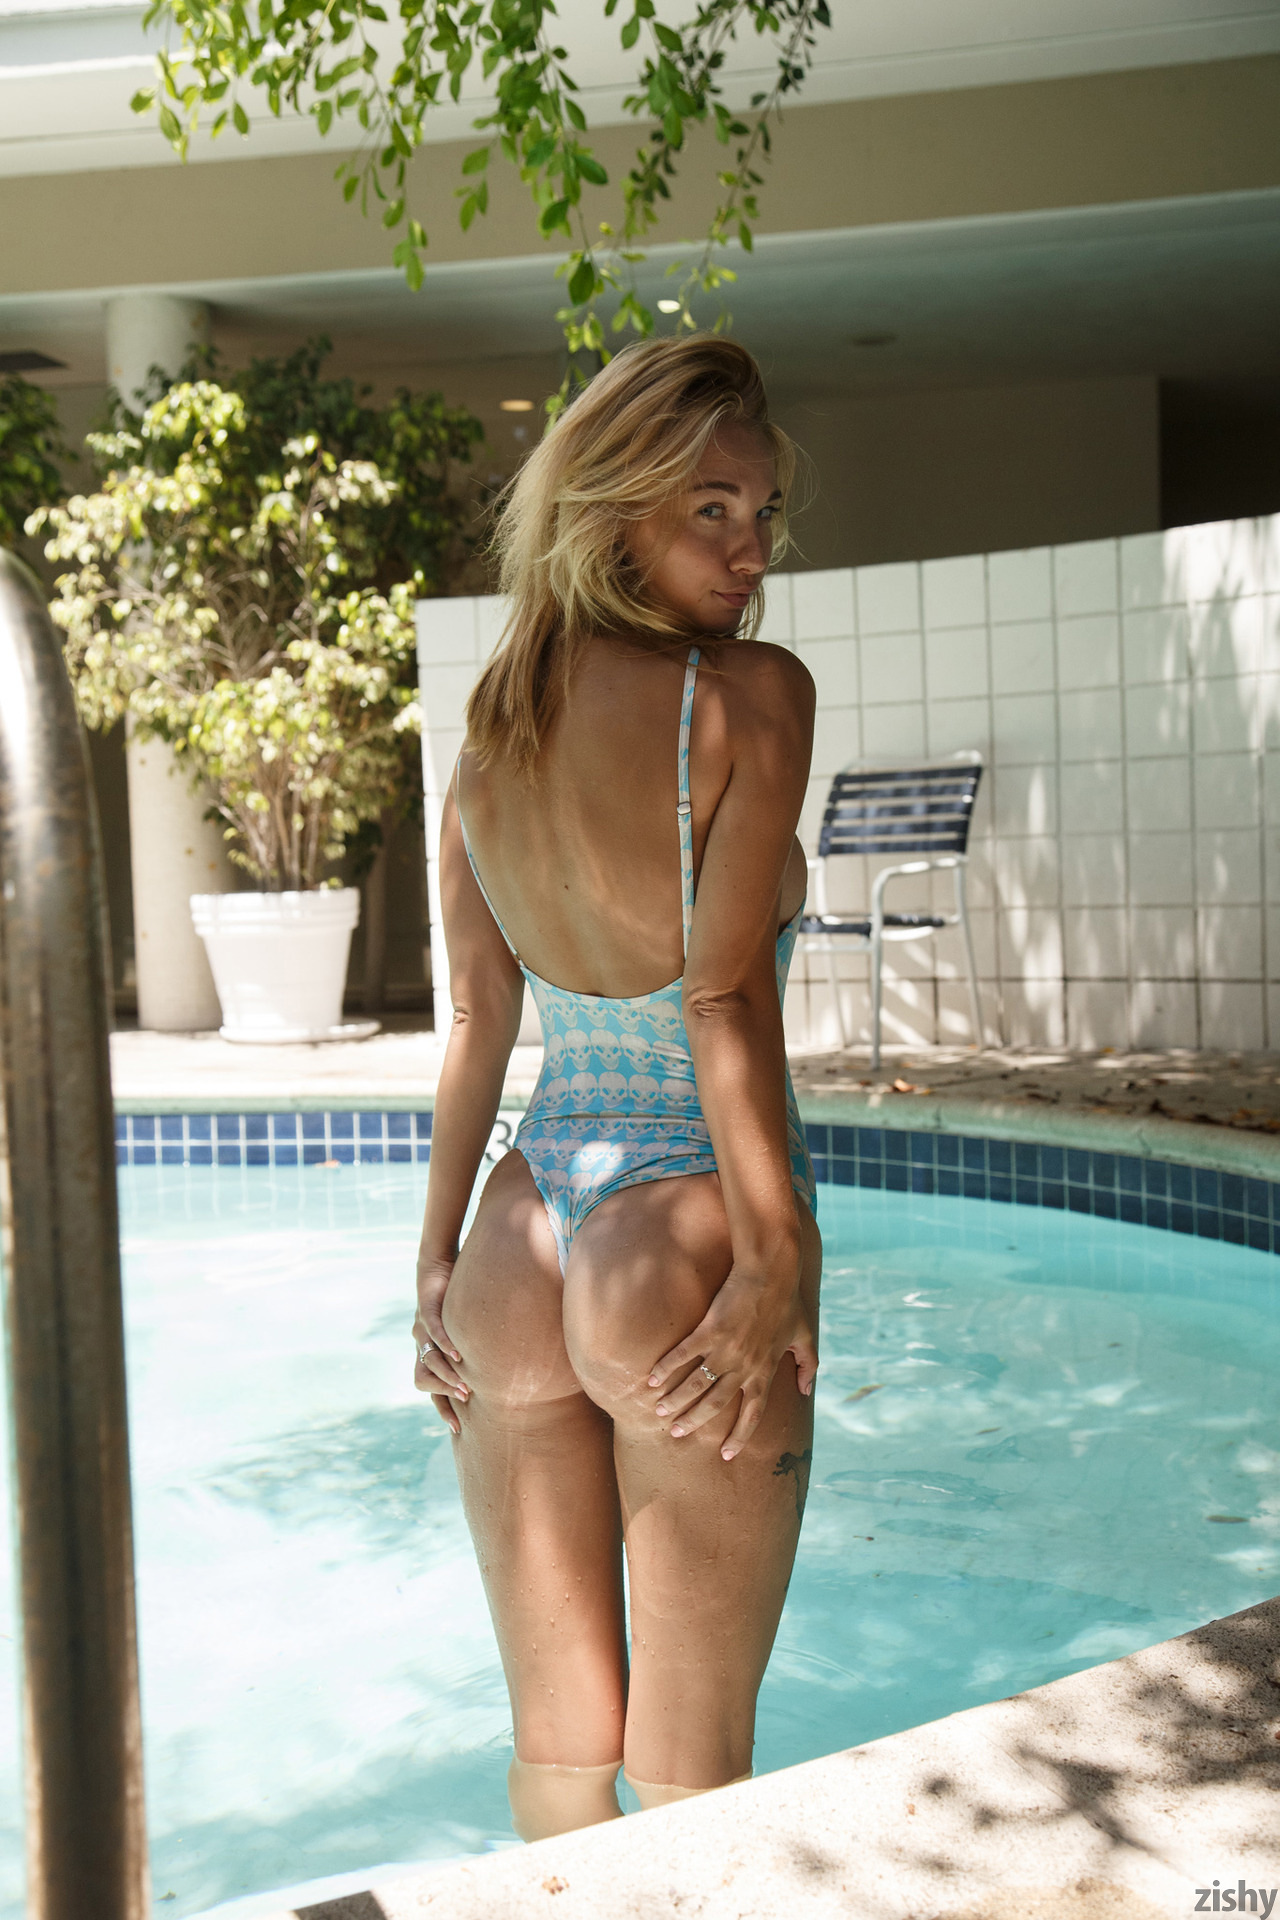 Lily Ivy Poolside Feminism 0073